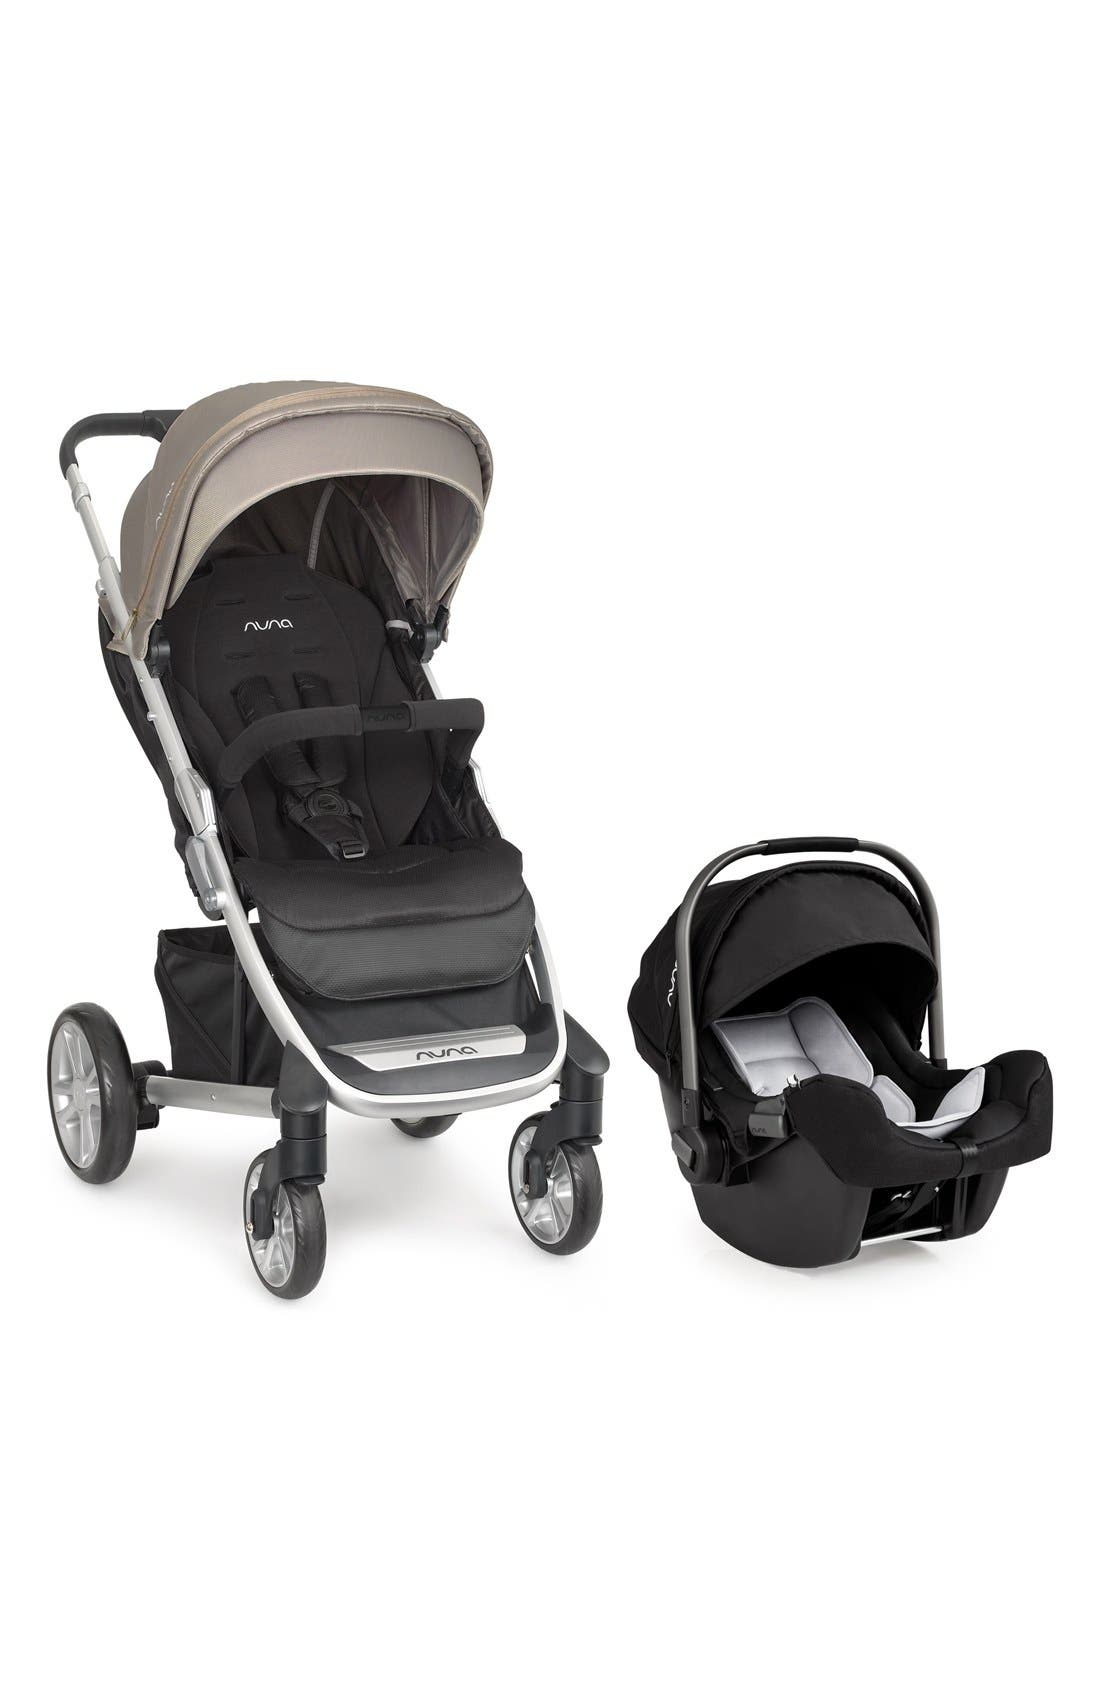 nuna 'TAVO™' Travel System (Stroller, Car Seat & Base)